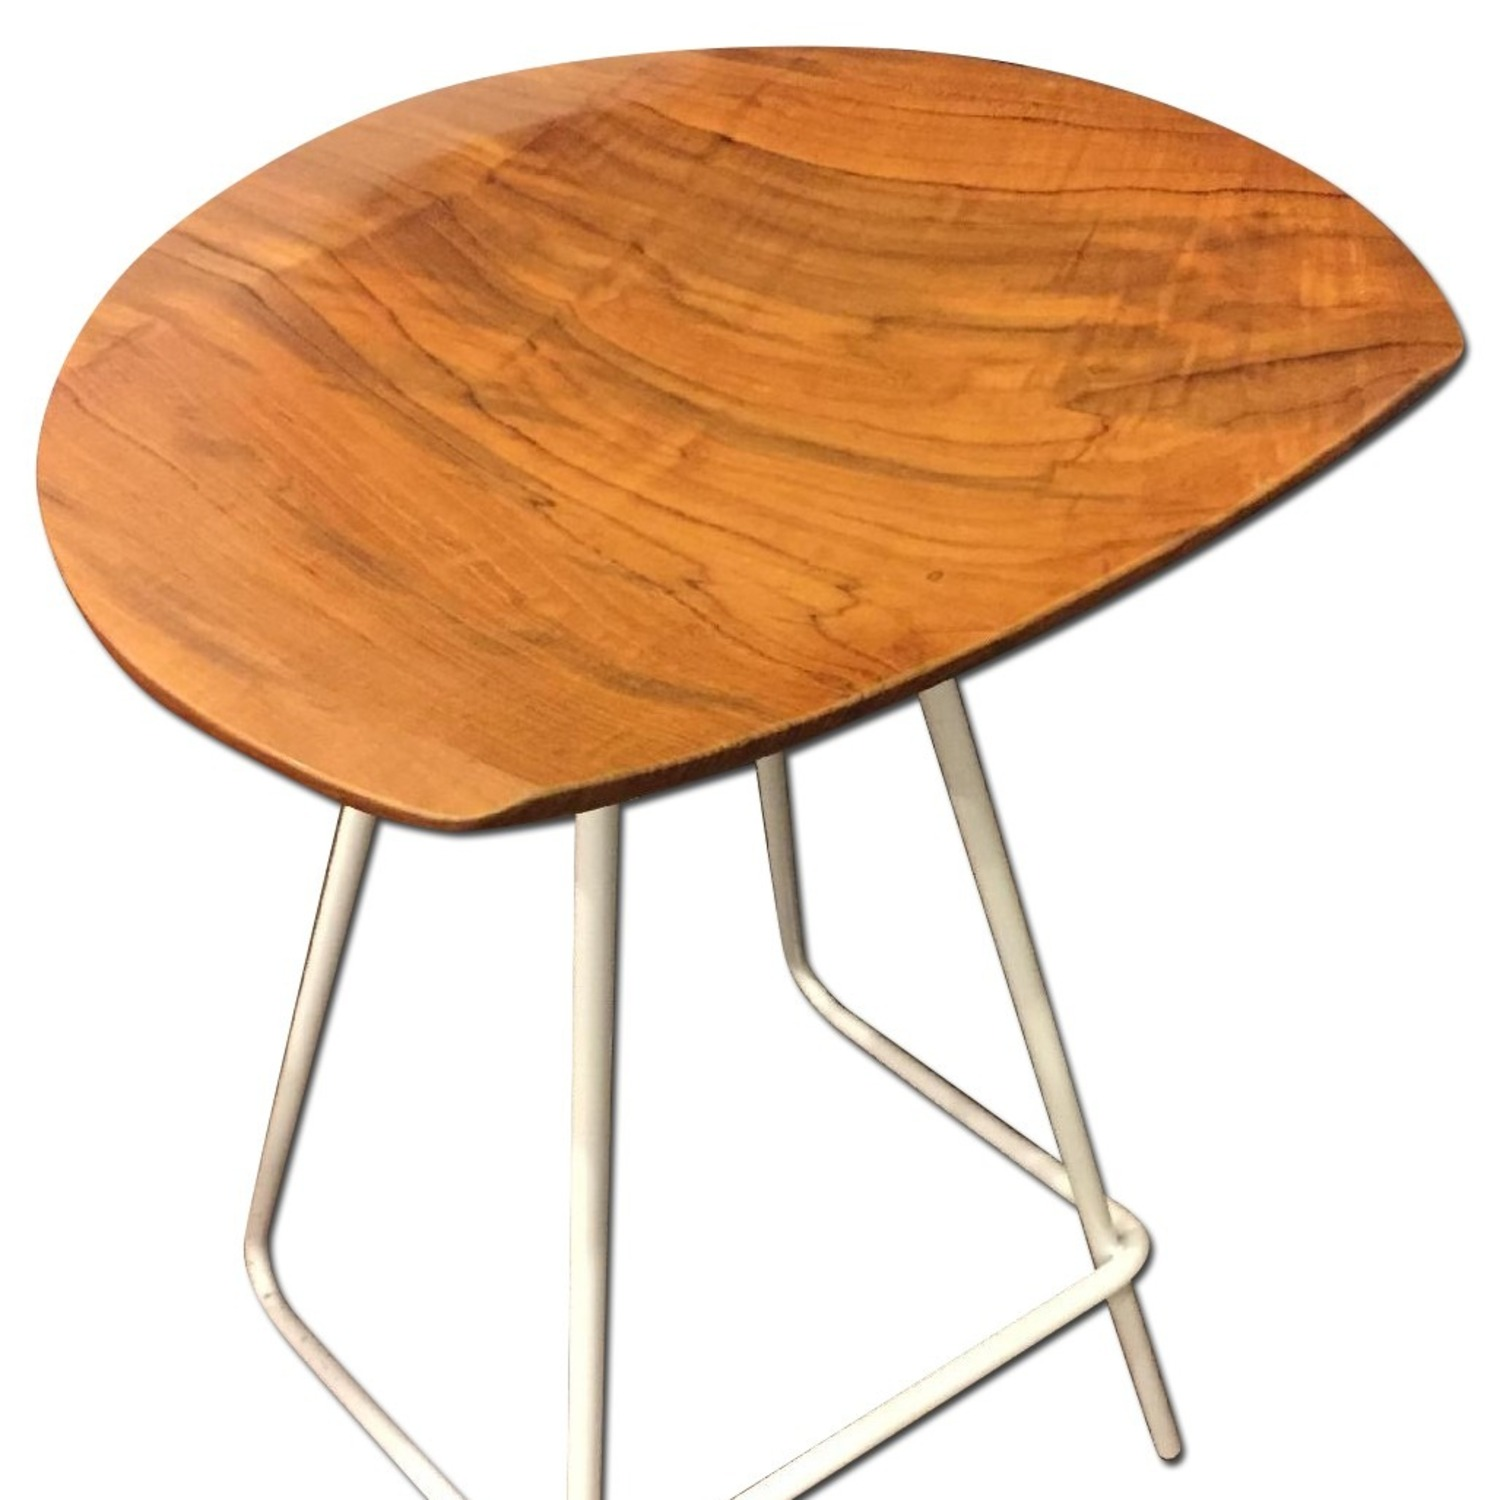 From The Source Perch Counter Stools - Set of 2 - image-1